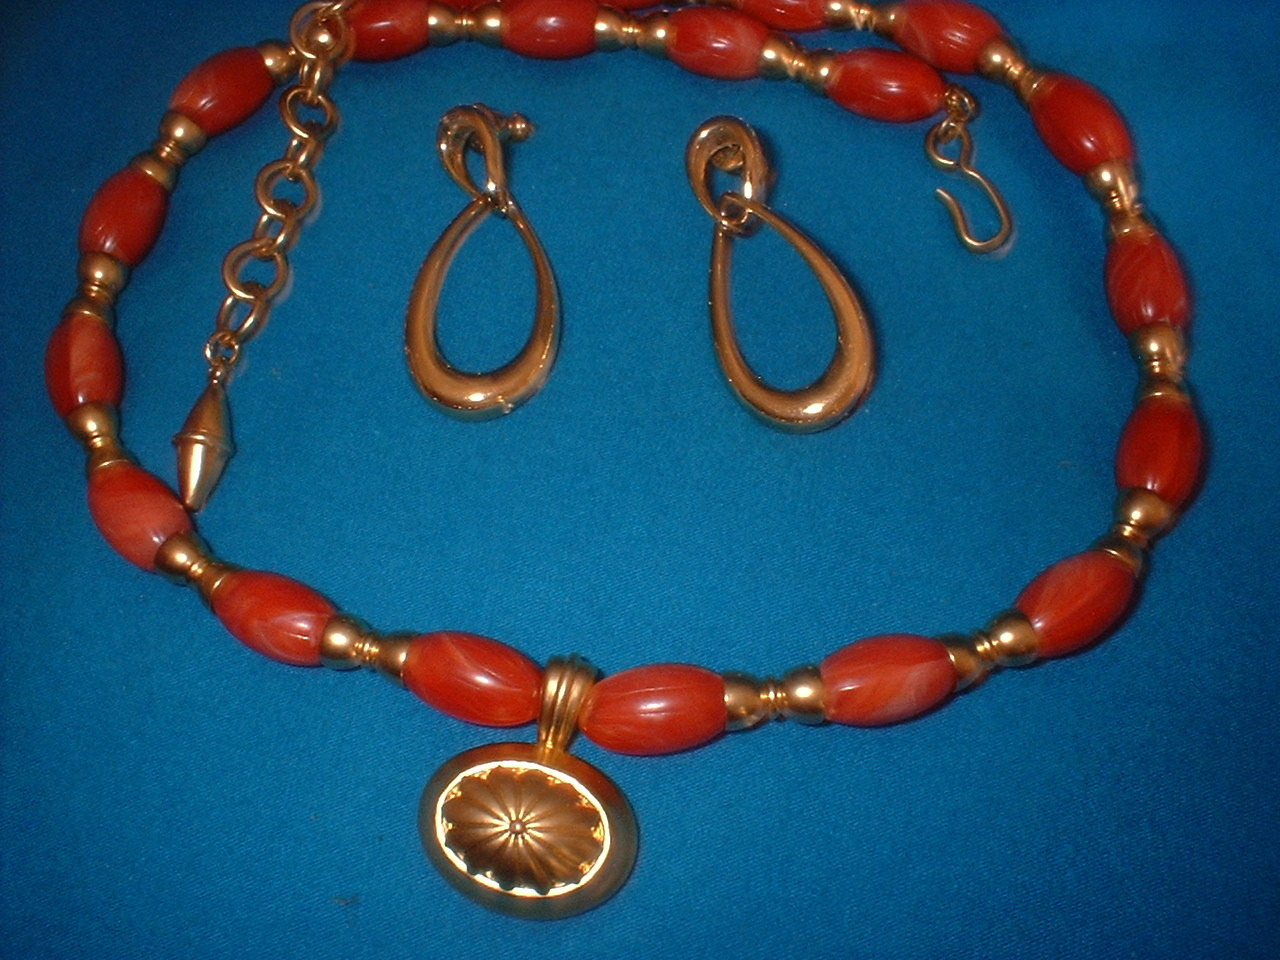 Orange and gold necklace full